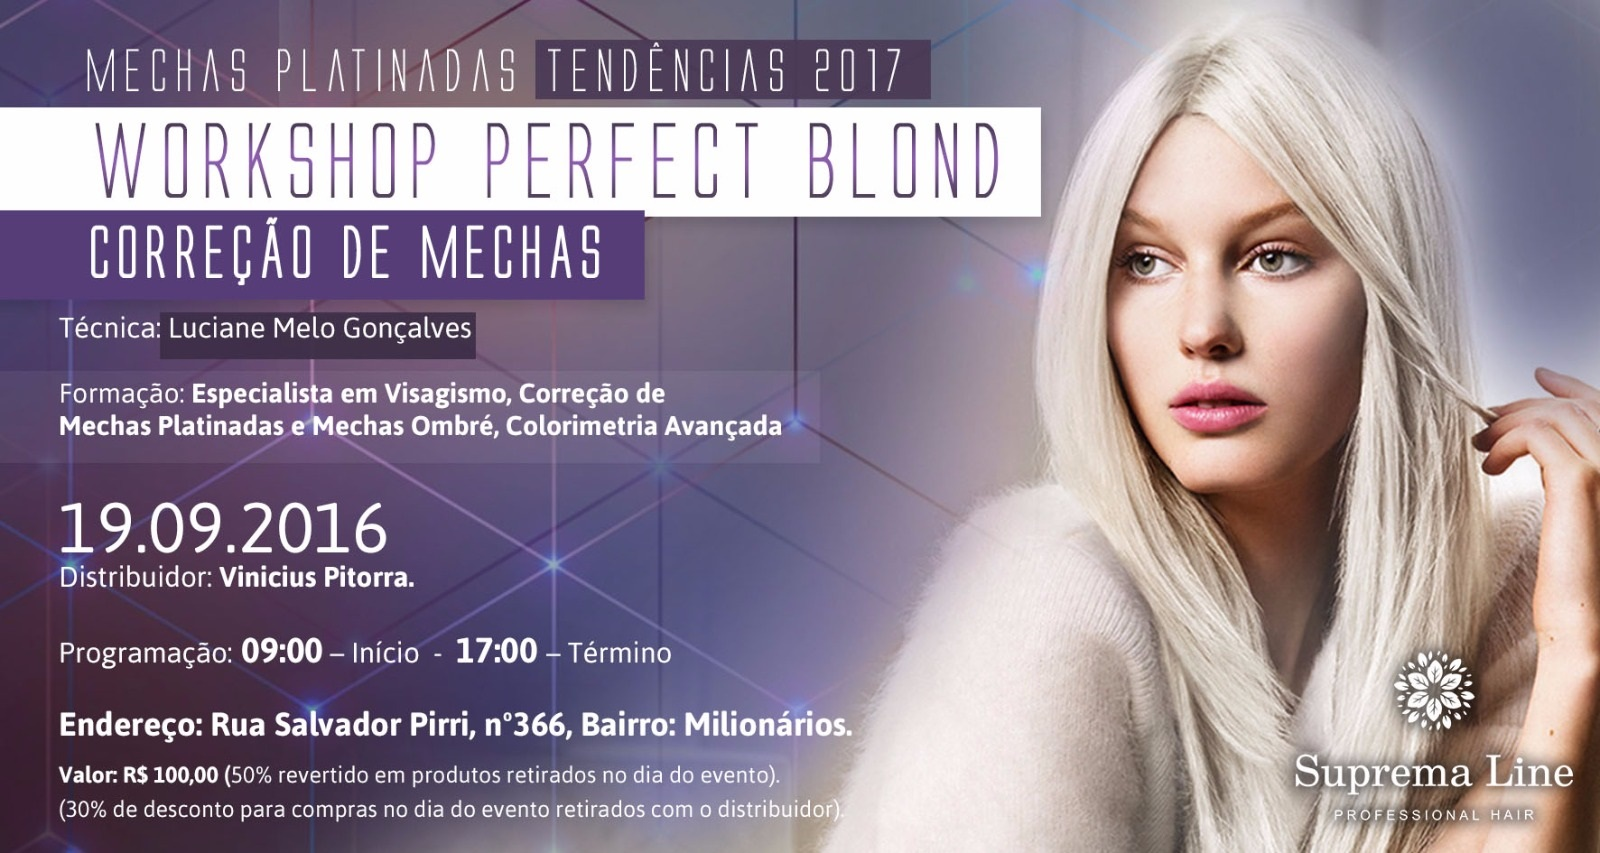 Workshop Perfect Blond: 19/09/2016 - Vinicius Pitorra.jpg